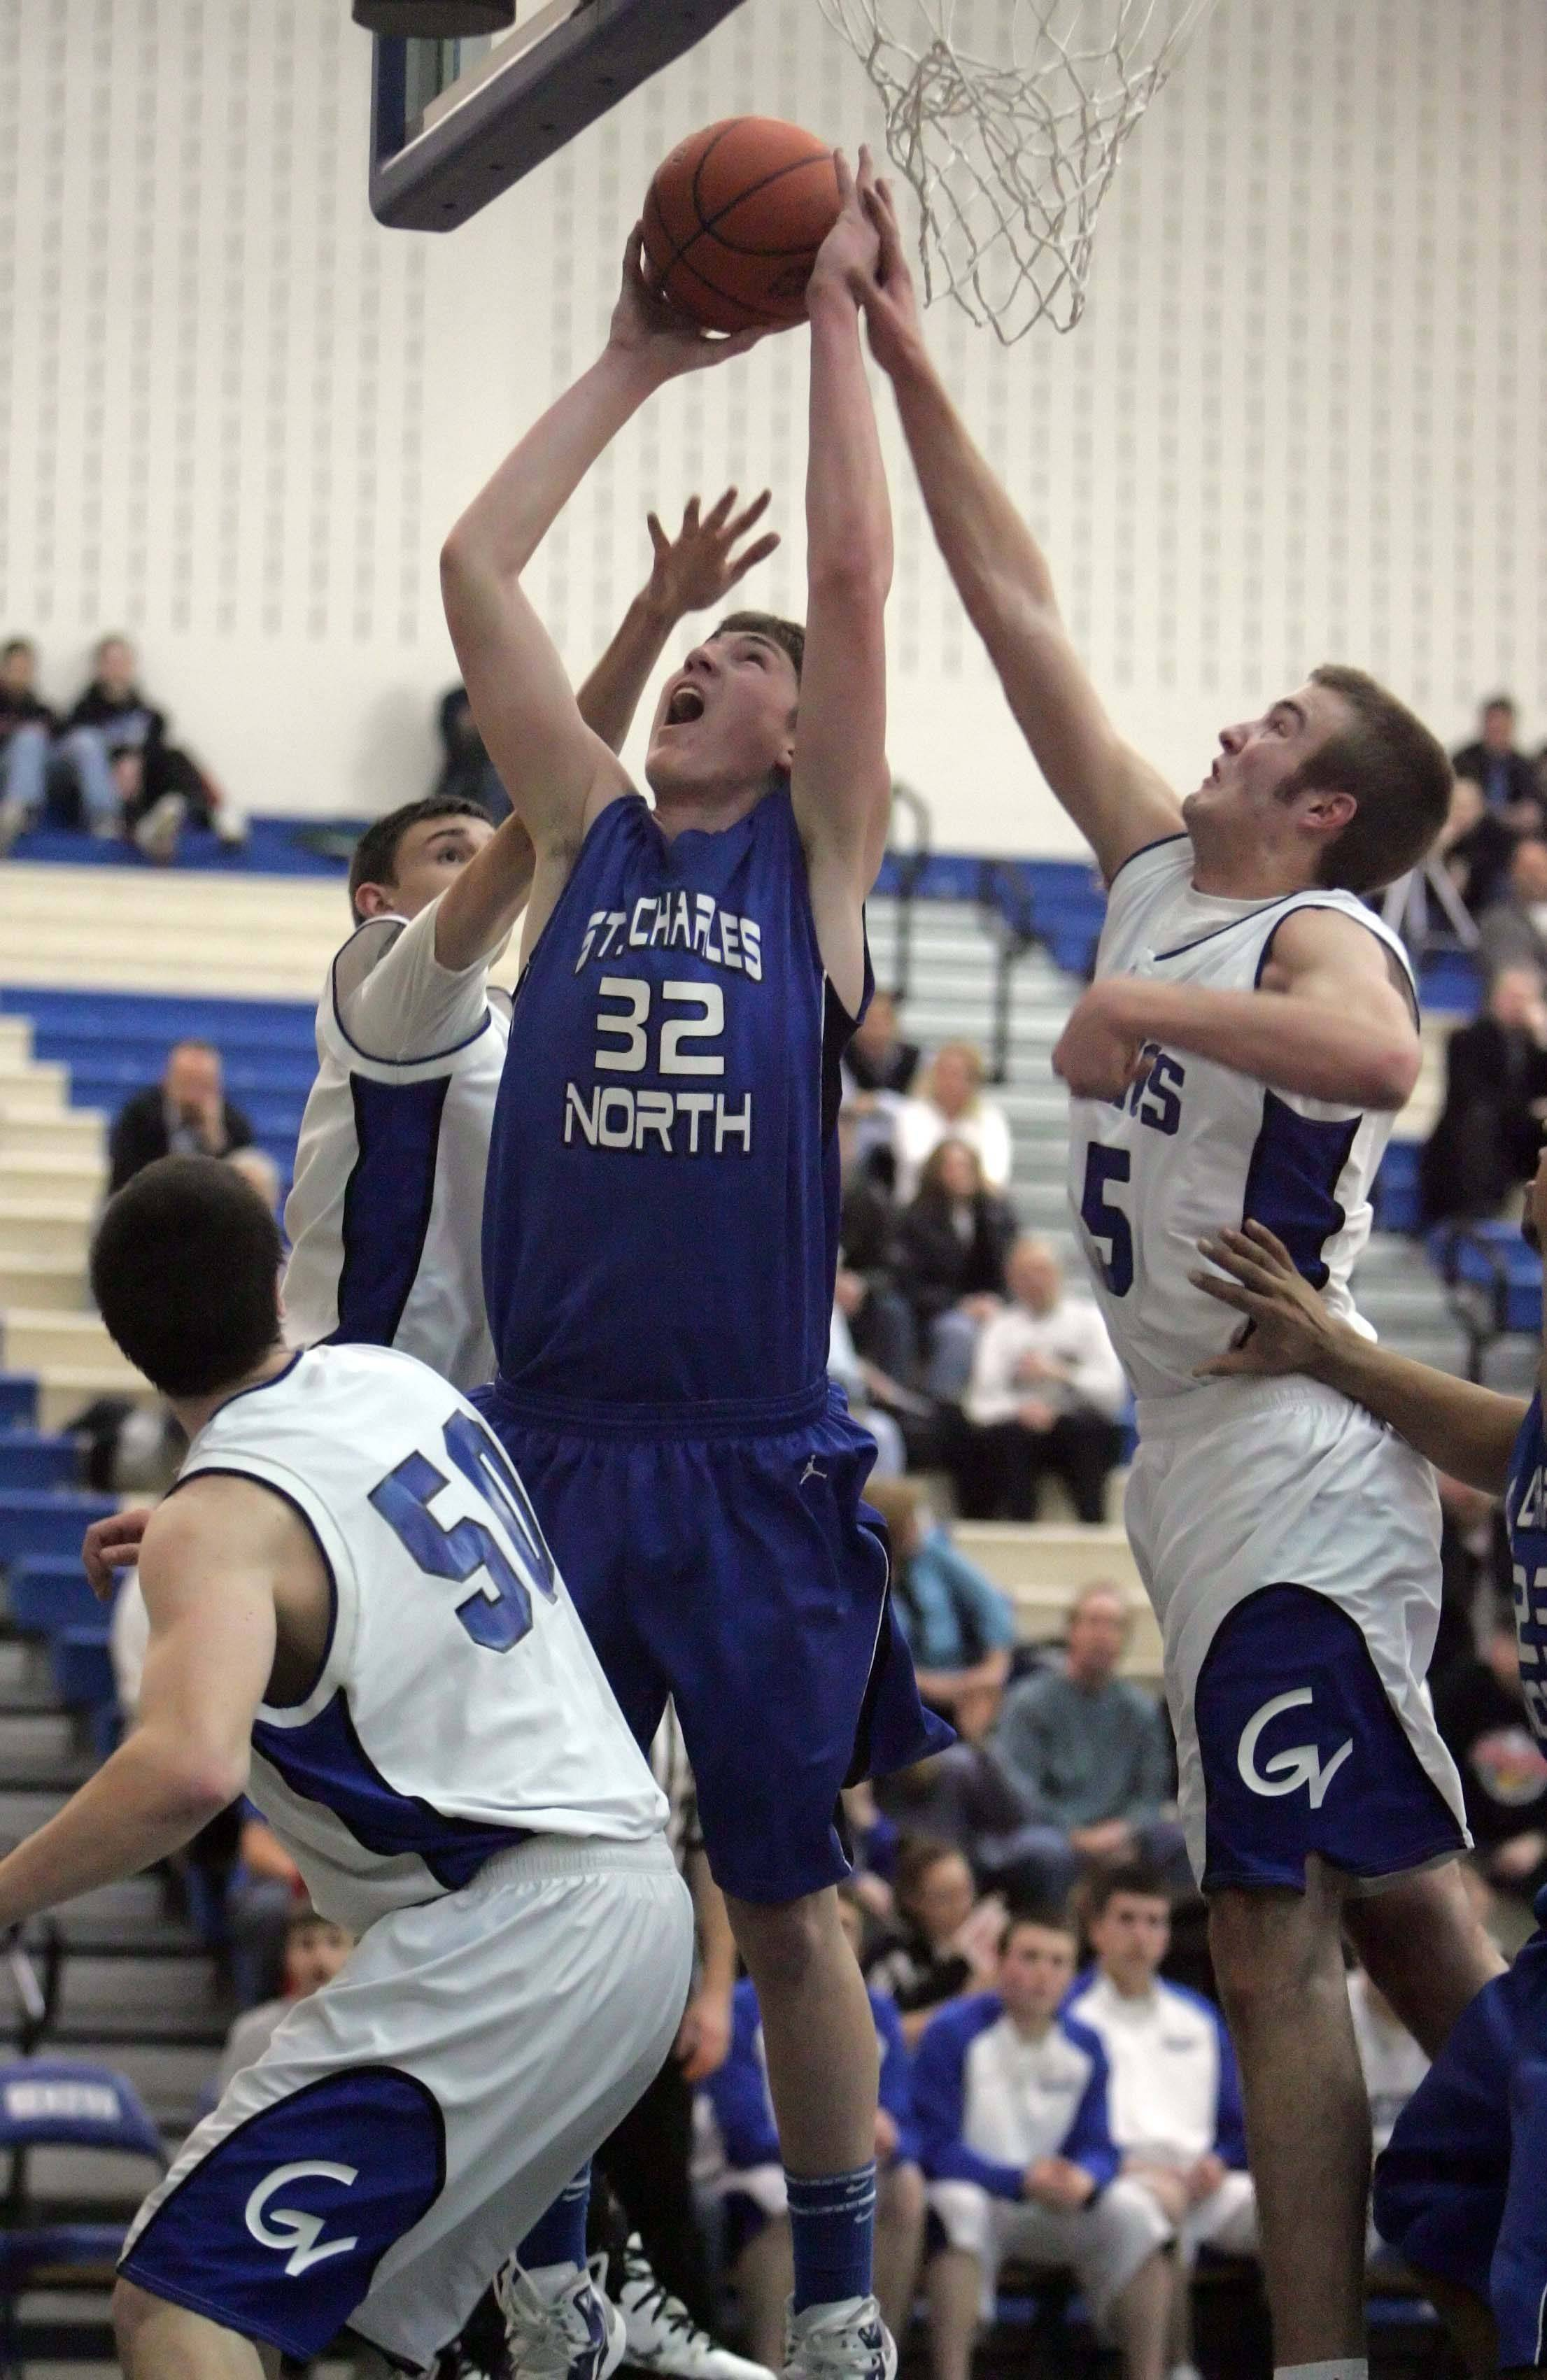 St. Charles North's Kyle Nelson, 32, goes to the hoop during Friday's game against Geneva.